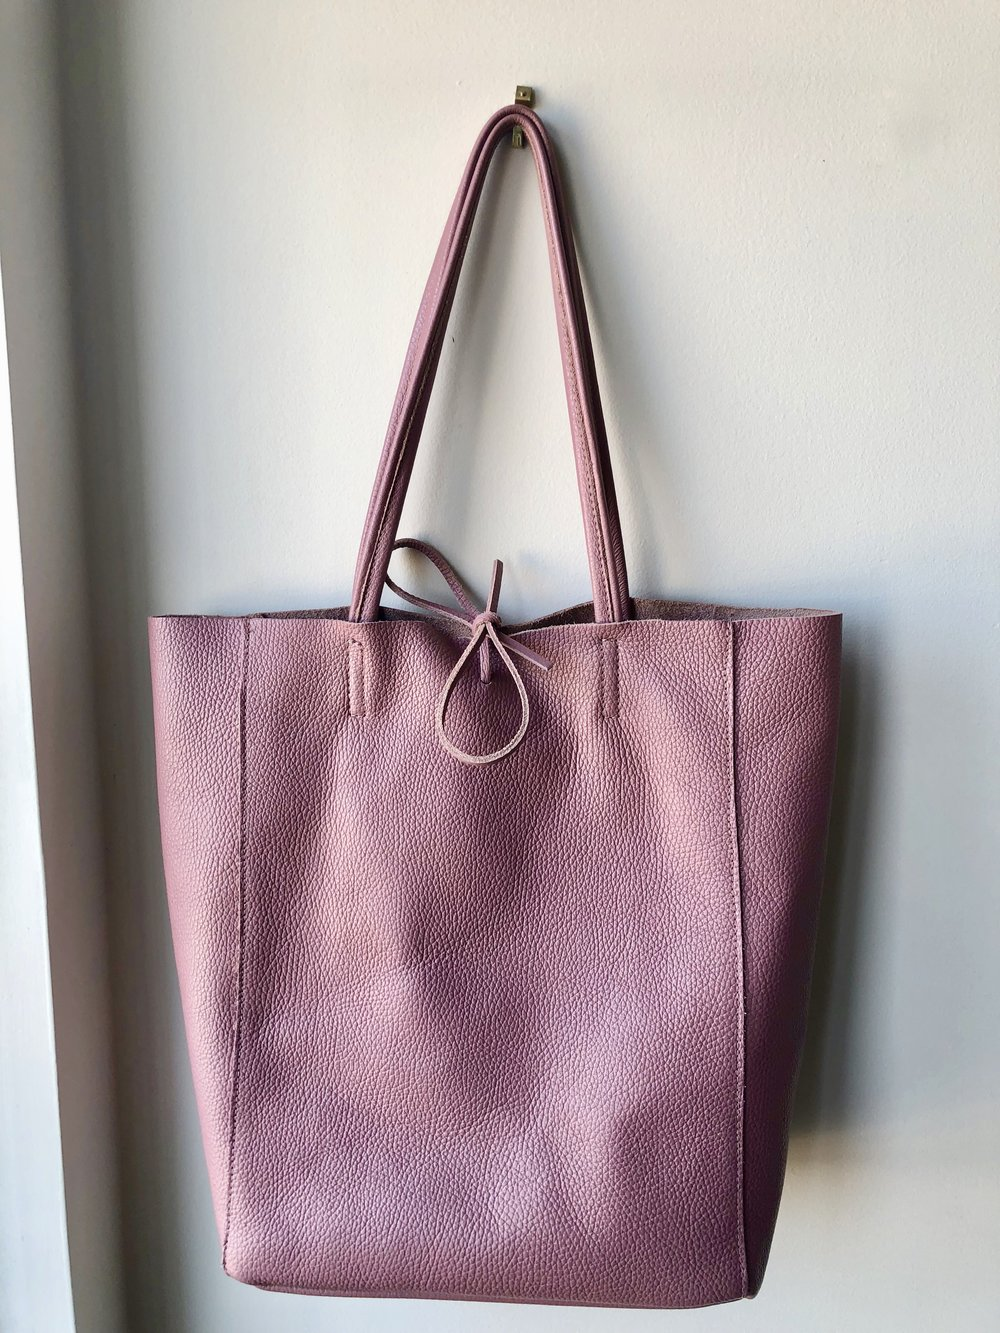 Pink bag from Florence